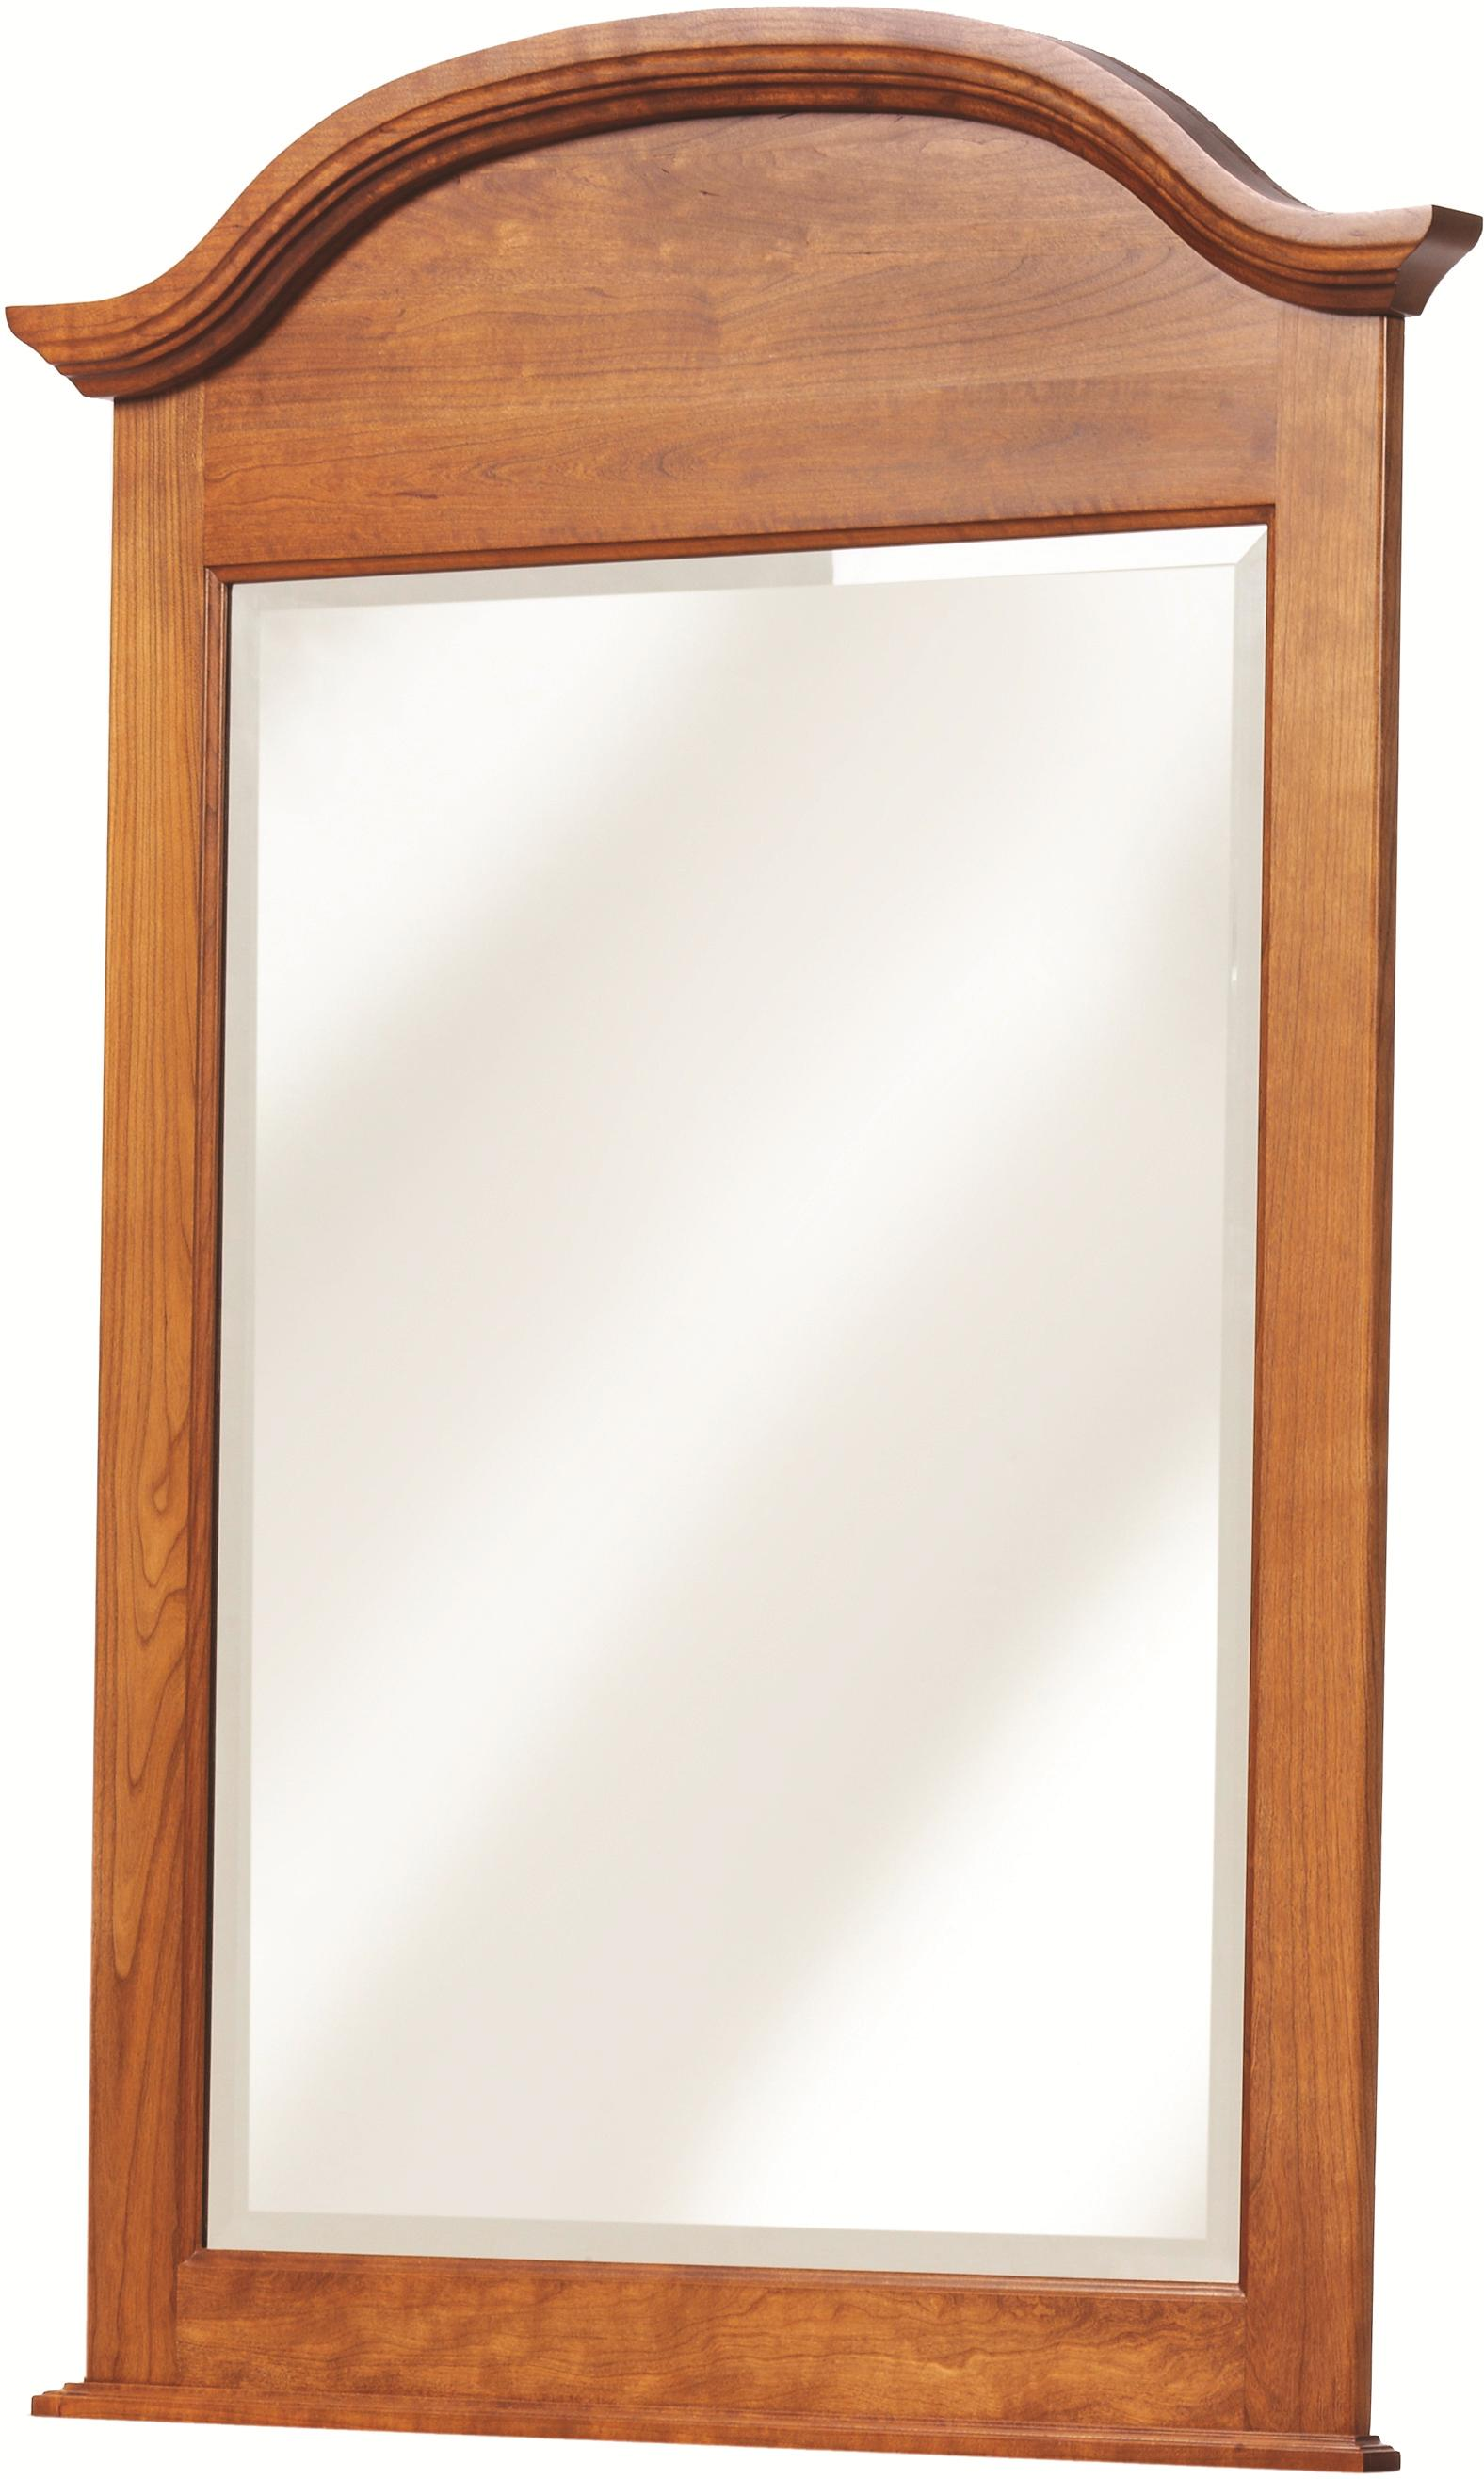 Victorias Tradition Dresser Mirror by Millcraft at Saugerties Furniture Mart